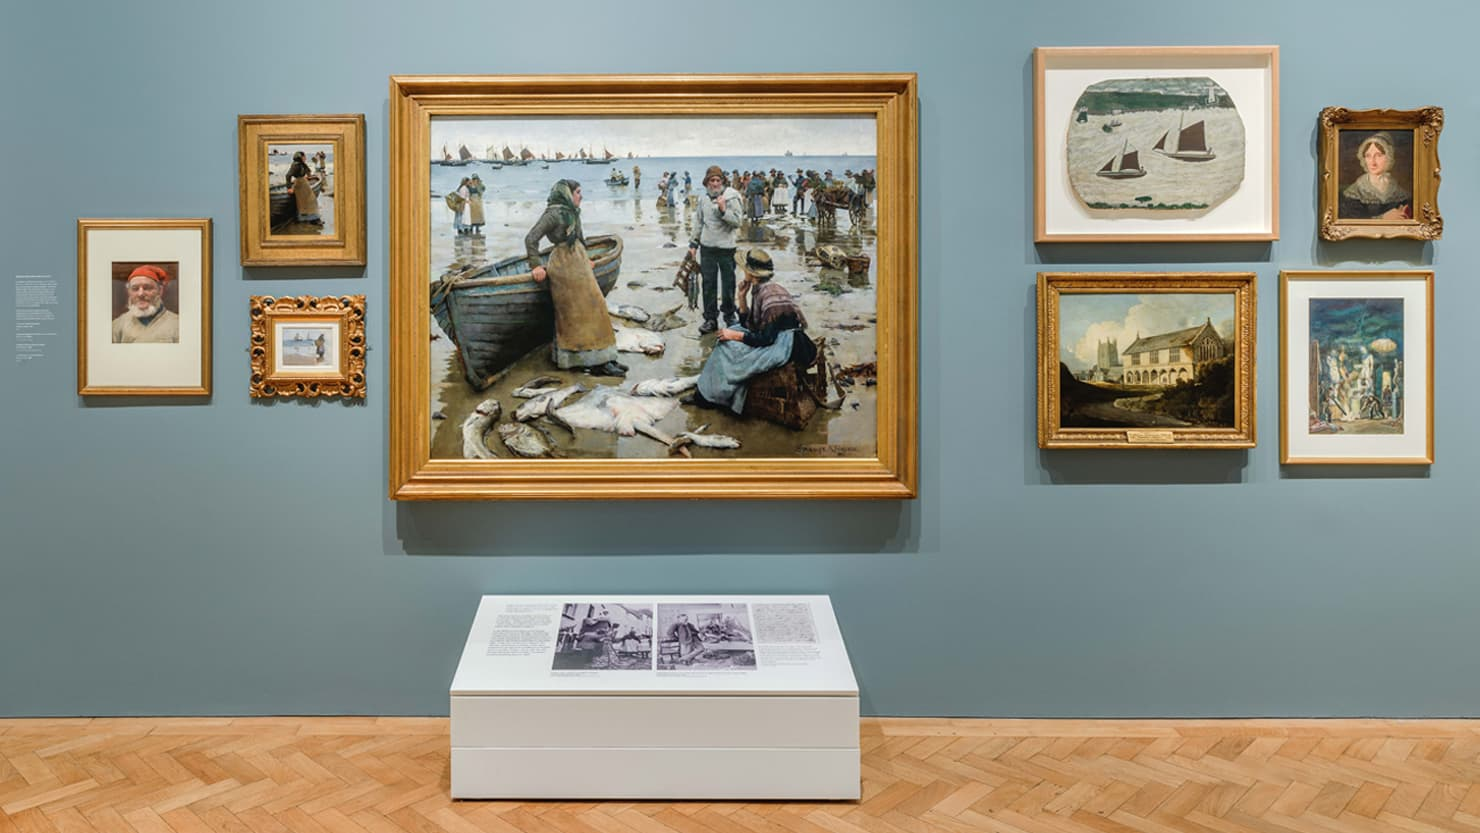 'A Fish Sale on a Cornish Beach' by Stanhope Forbes plus other works in the 'Our Art' gallery at The Box, Plymouth